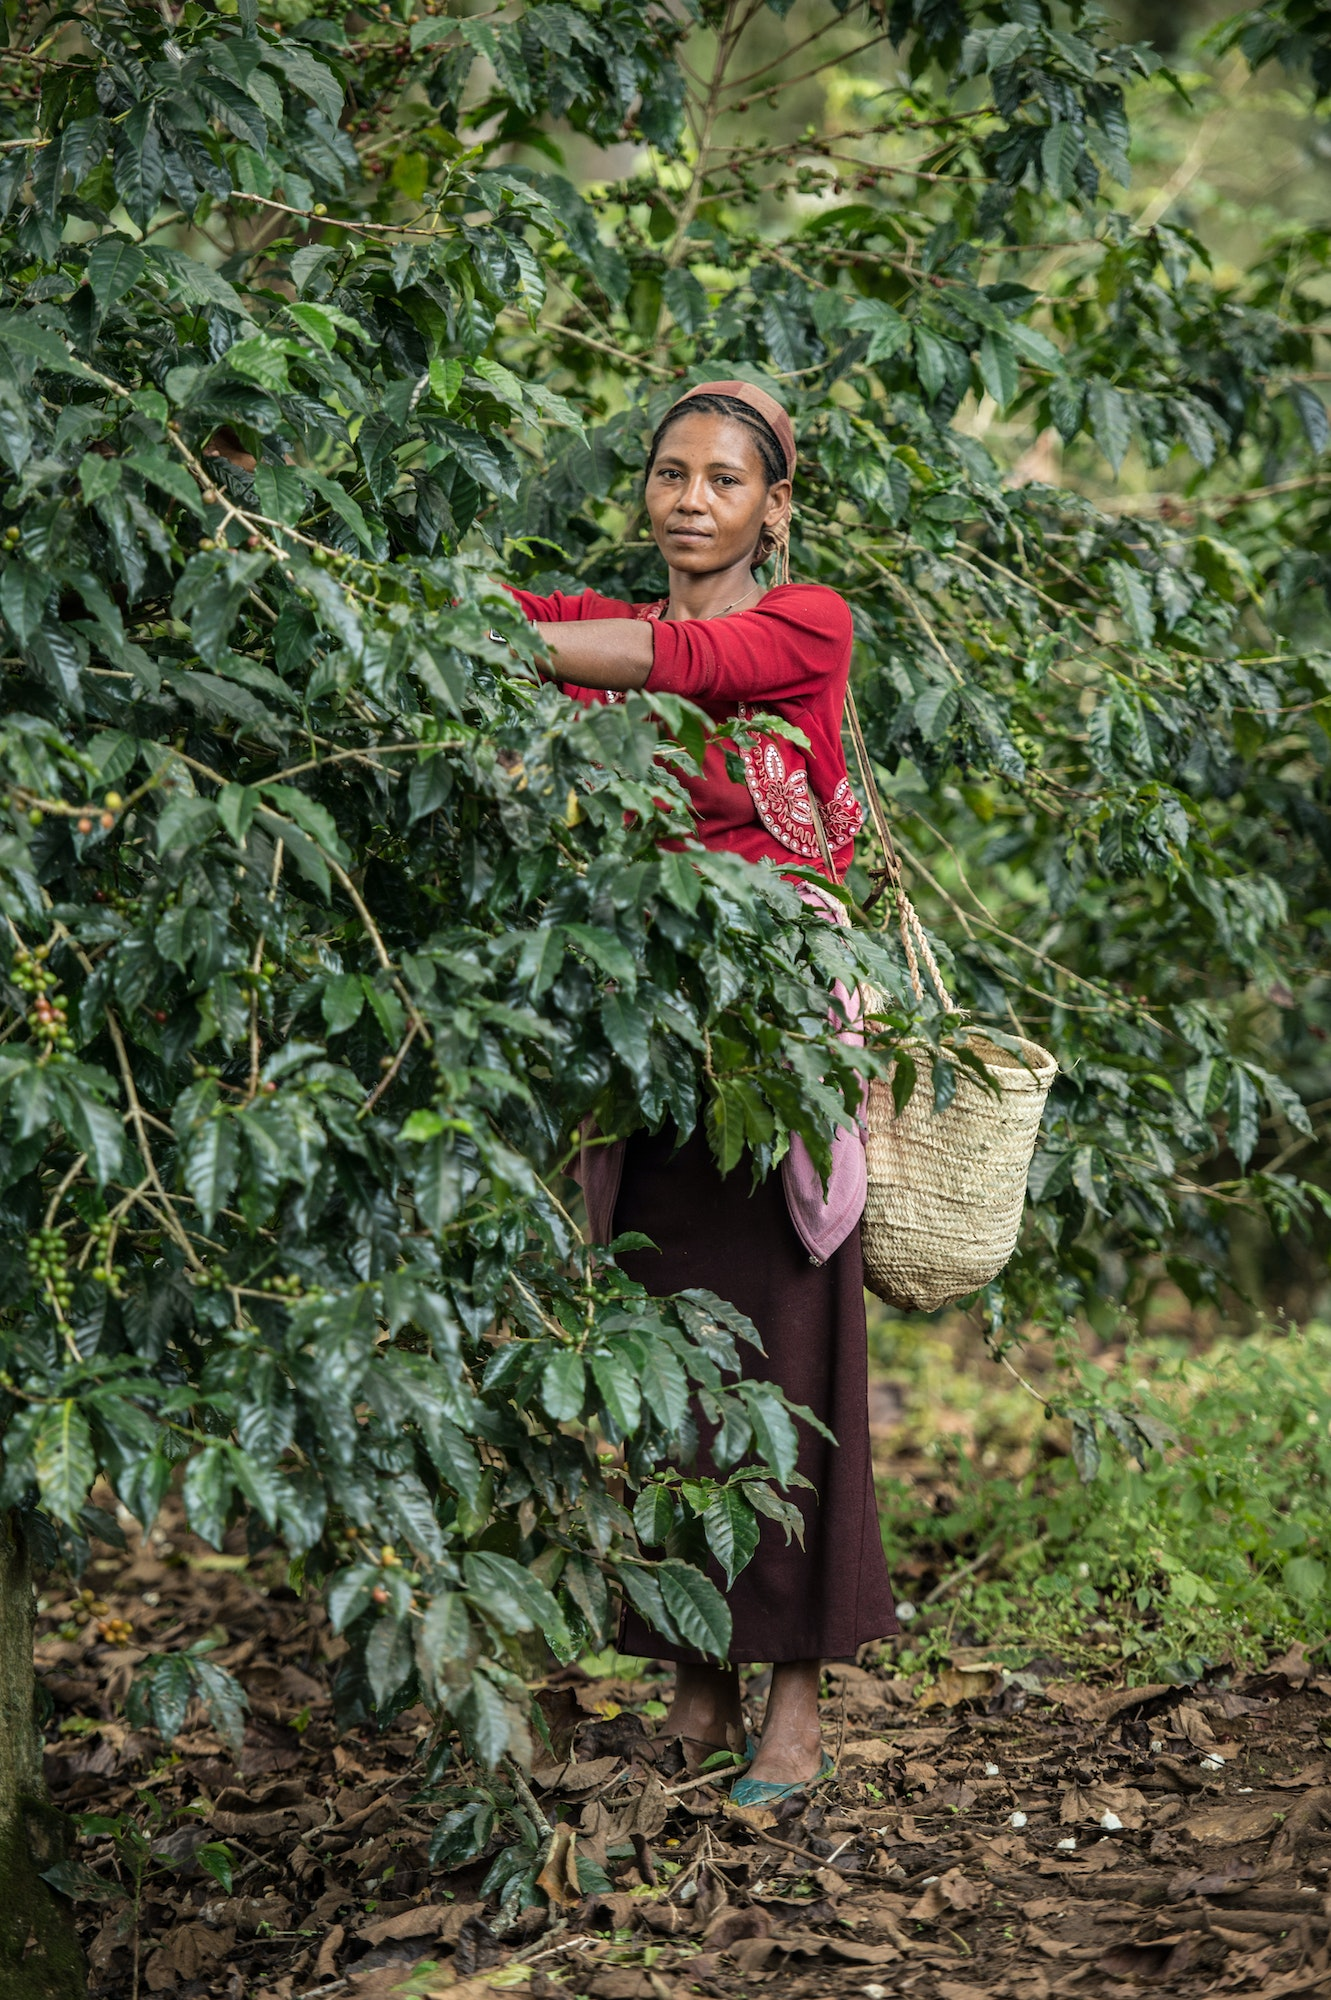 Ethiopia is the world's seventh largest producer of coffee, and Africa's top producer.